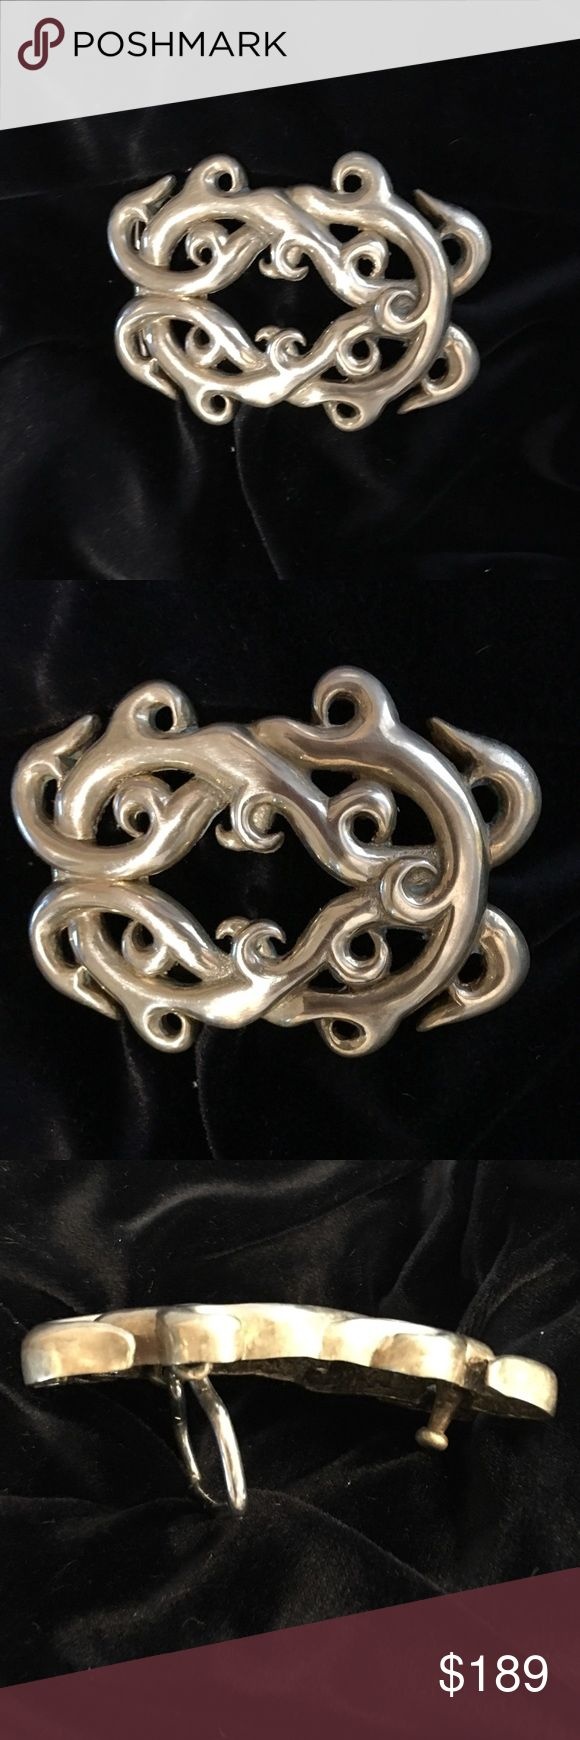 Custom Made Celtic Knot Solid Brass Belt Buckle The Celtic knot on this solid brass buckle is an intricate rendering of the renowned endless knot. These beautiful knots have no beginning nor end; an ancient symbol of many things... most of all, LOVE. Even carved into ancient chastity belts! custom-made & hand-carved (from wax, then cast in solid brass). Belted, this one-of-a-kind buckle is hot with women's jeans and striking on a man in a kilt. Stunning on... I've been asked if it was made…